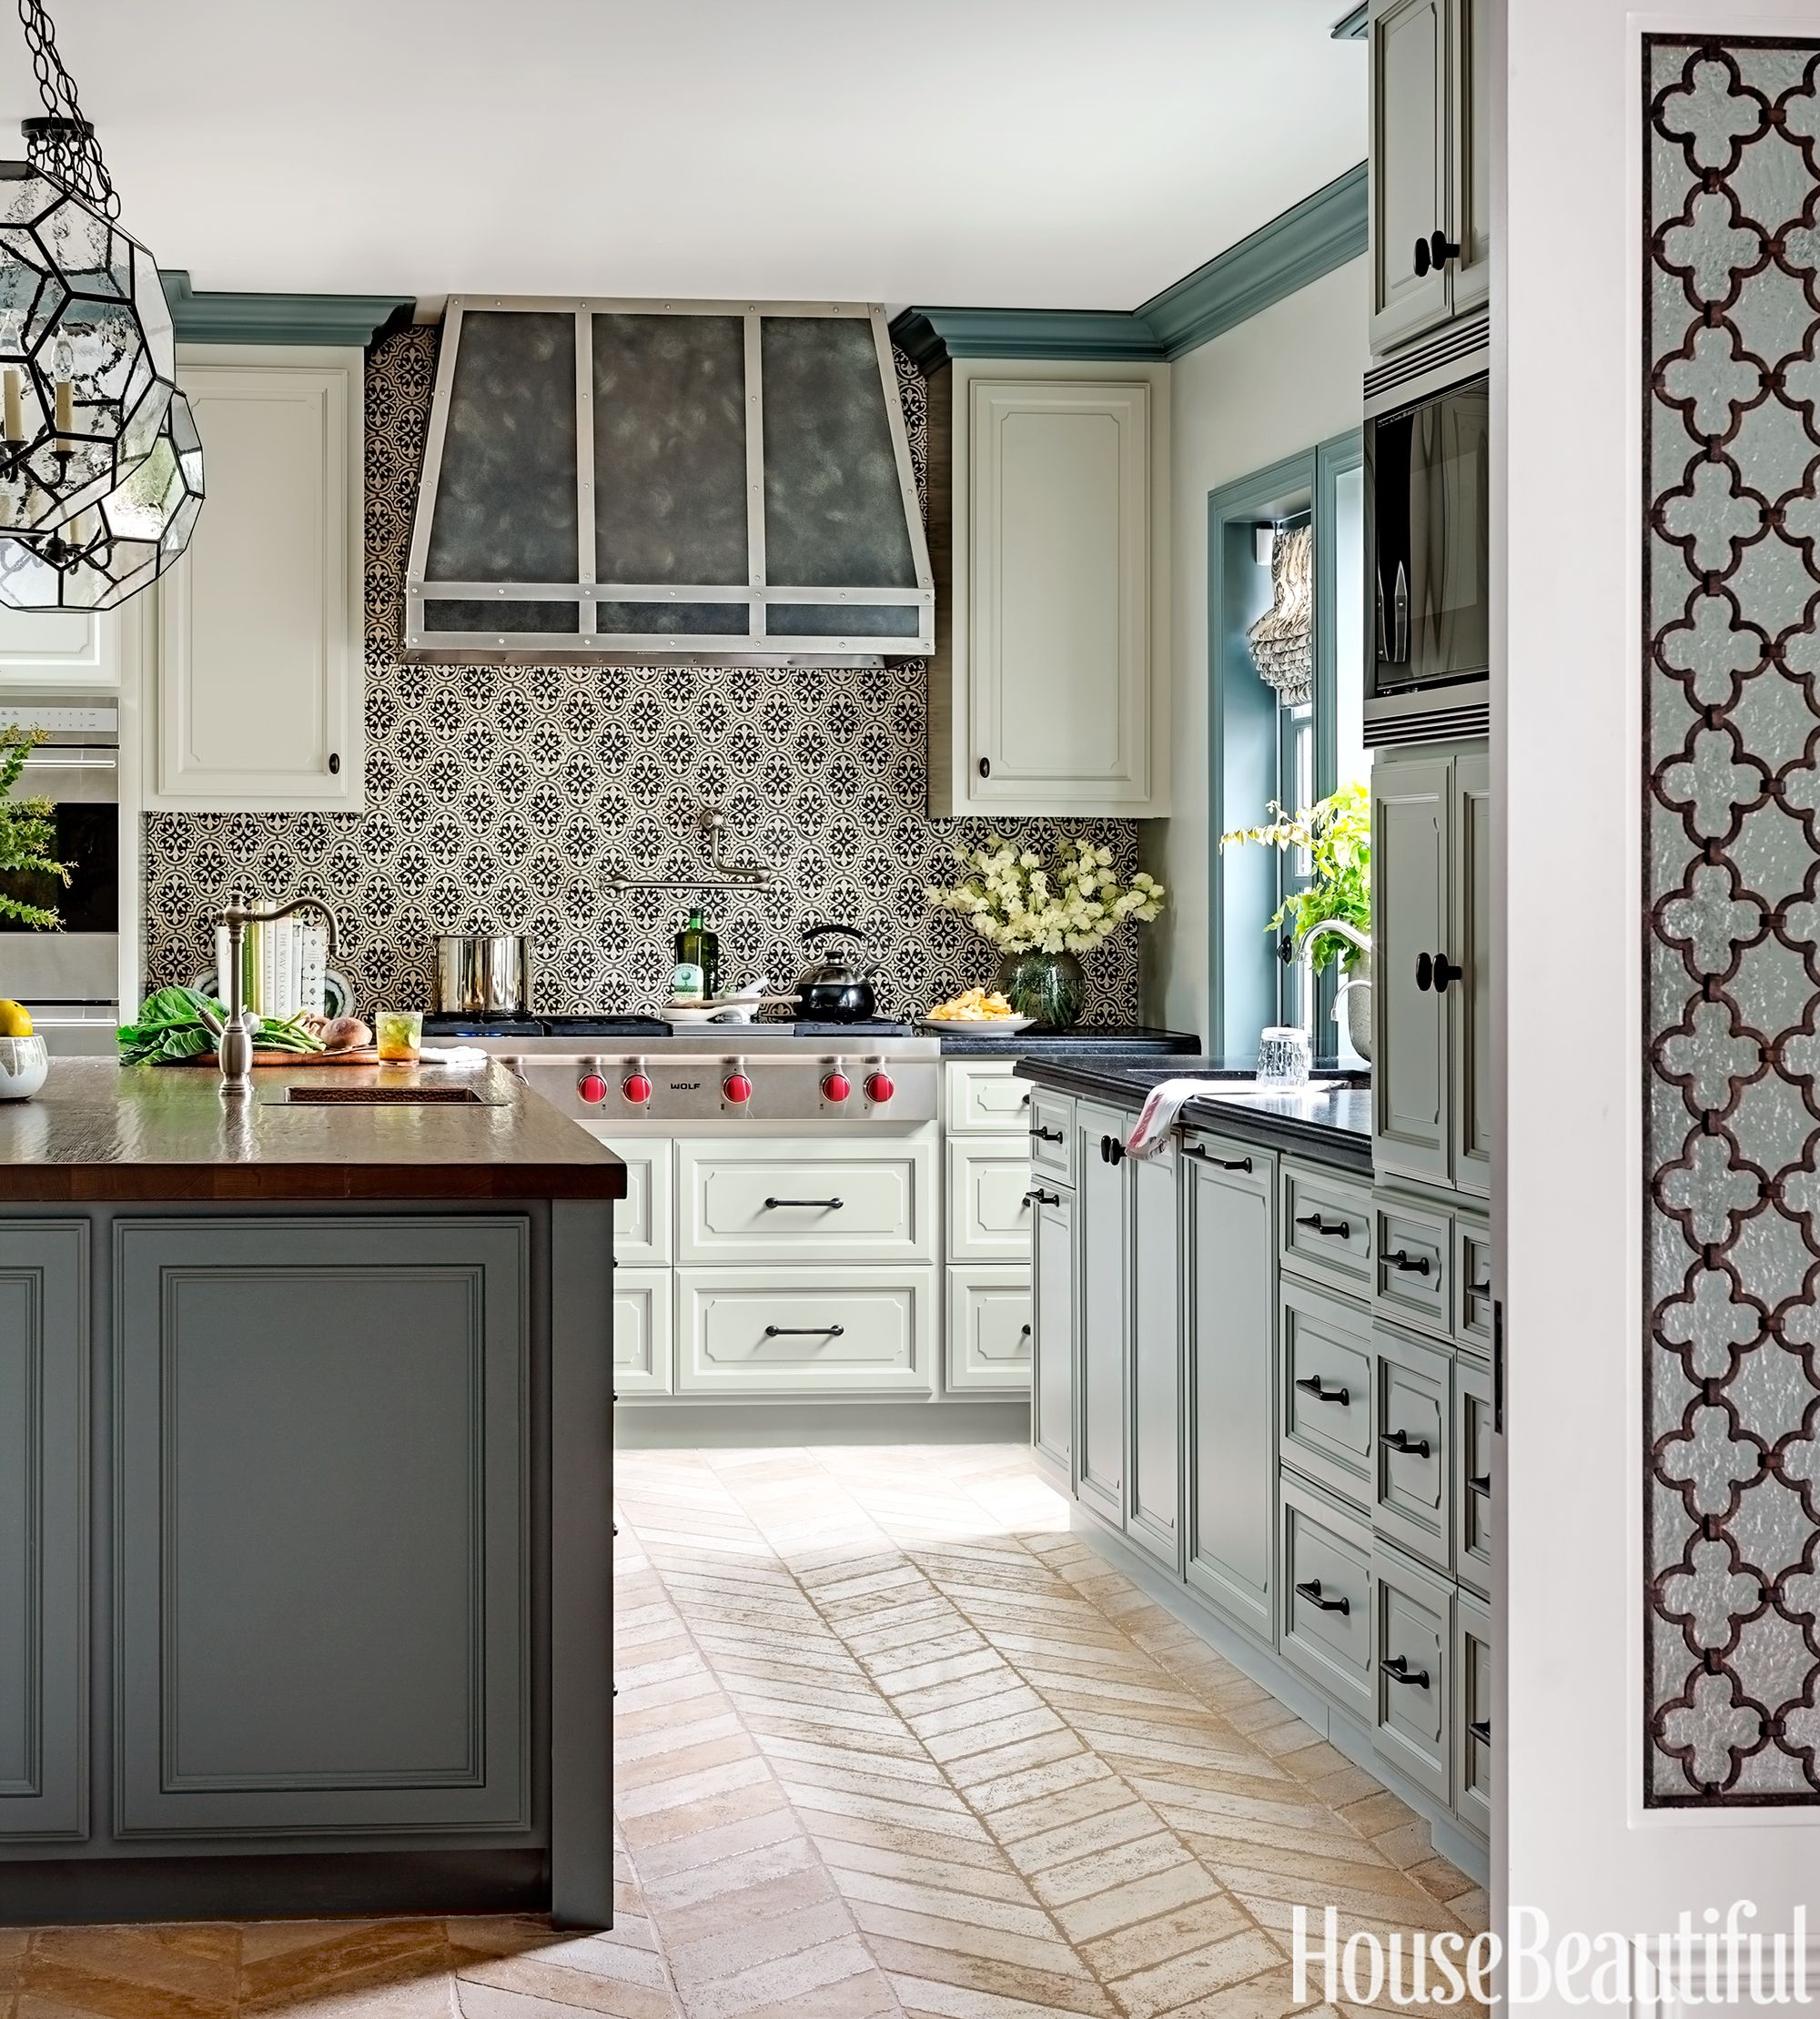 Lovely Tile Kitchens #1 - House Beautiful